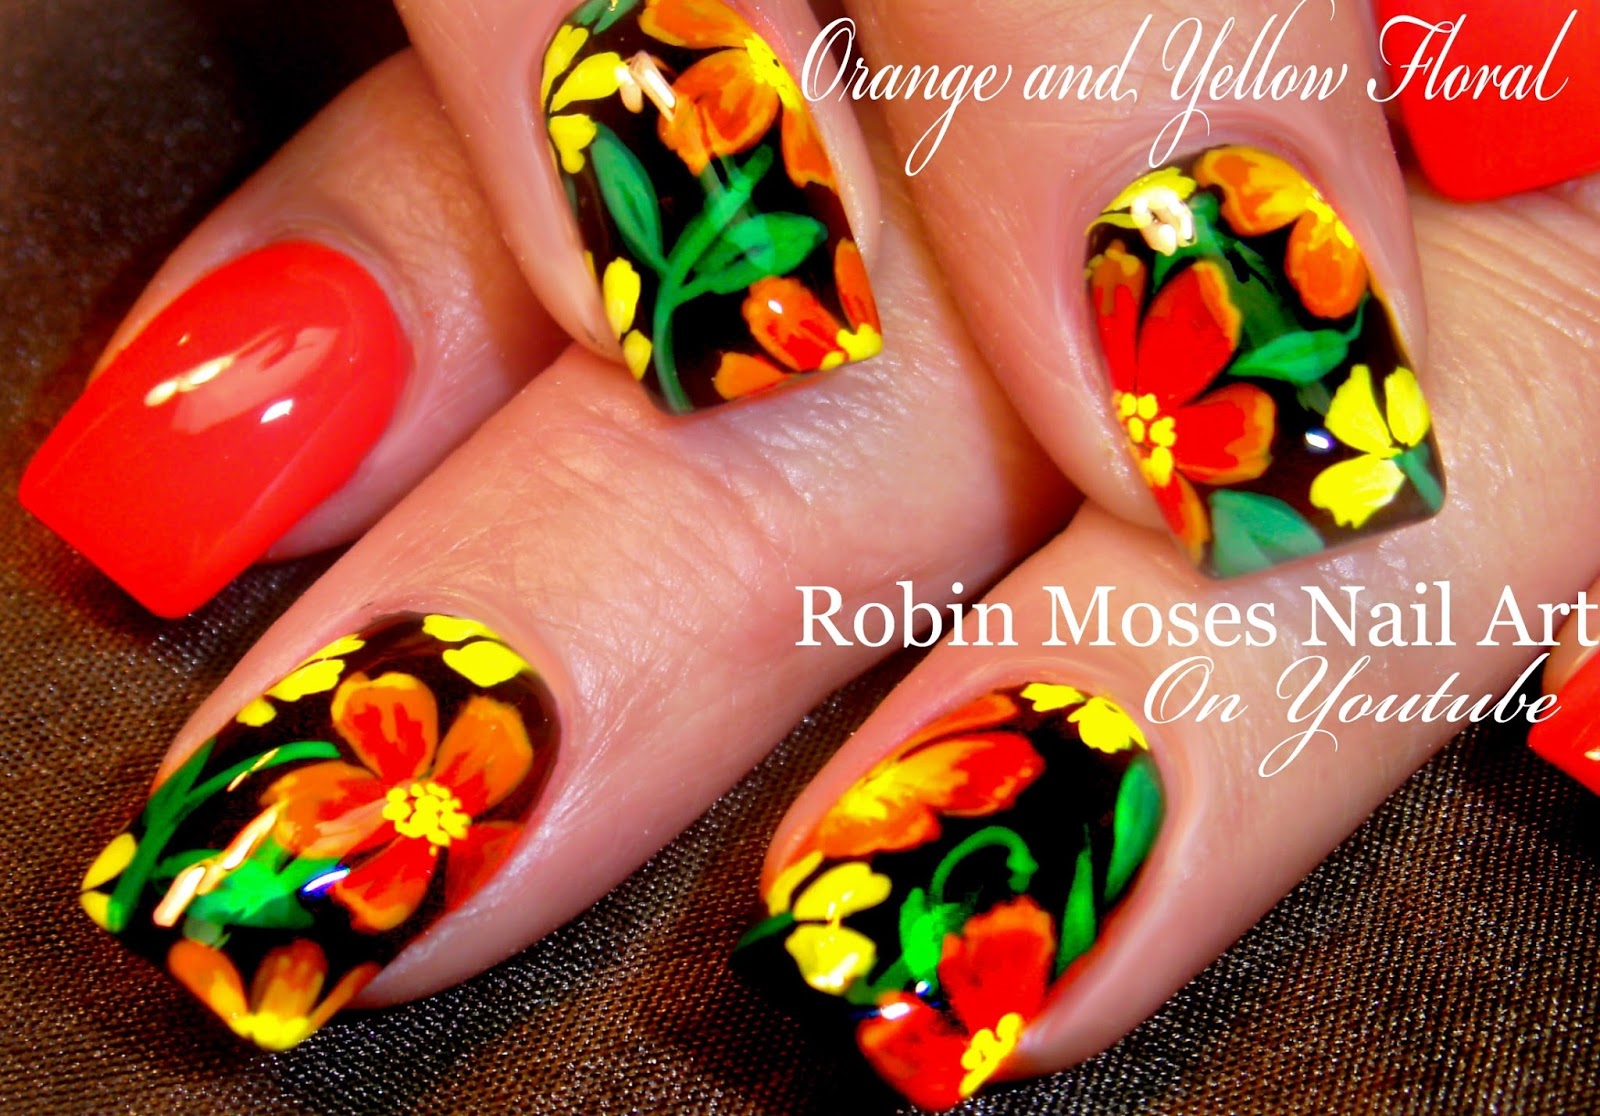 Robin Moses Nail Art: Tropical Nails with Essie Sunshine